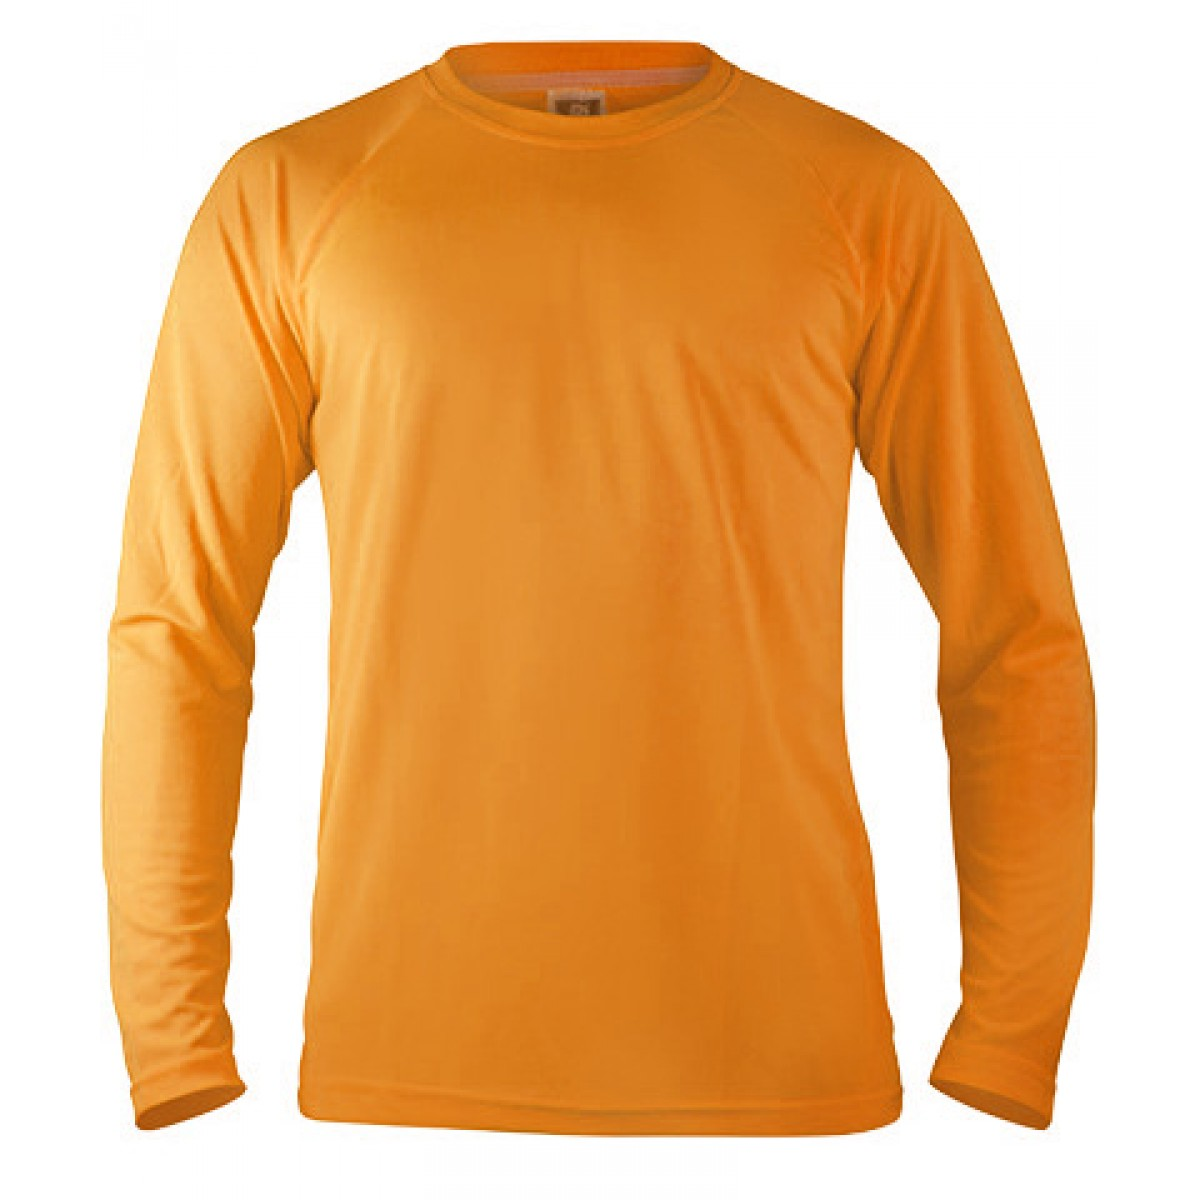 Long Sleeve Mesh Performance T-shirt-Neon Orange -M